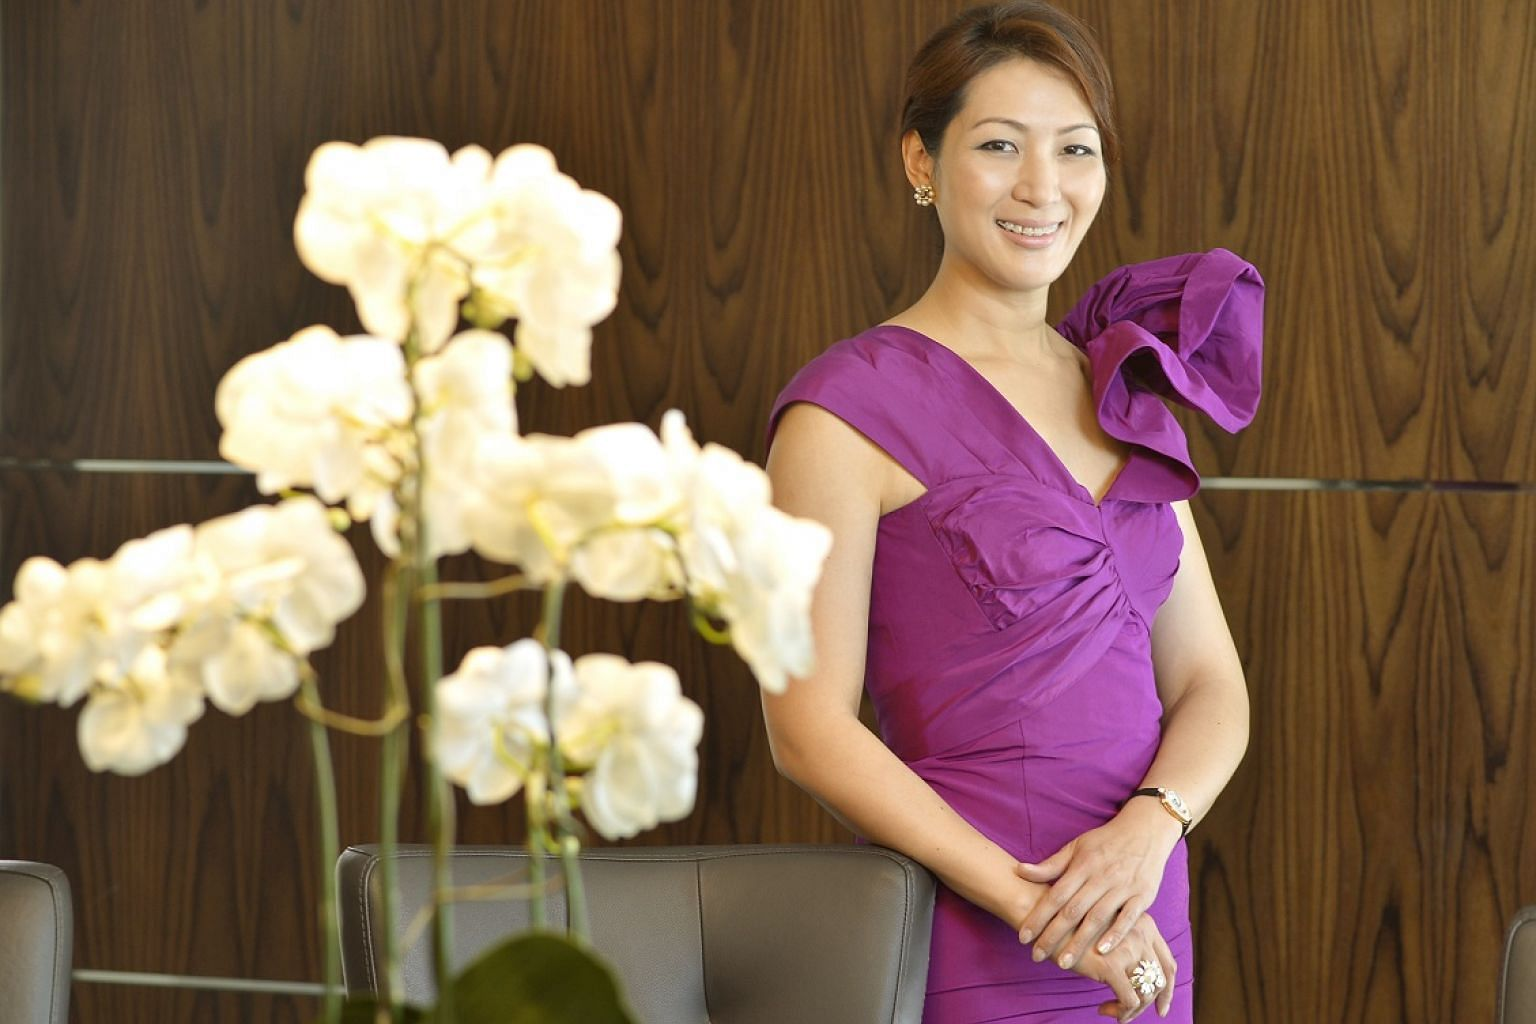 Mrs Nana Au-Chua, COO of lighting company Million Lighting, has over 30 Oscar de la Renta gowns and cocktail dresses.